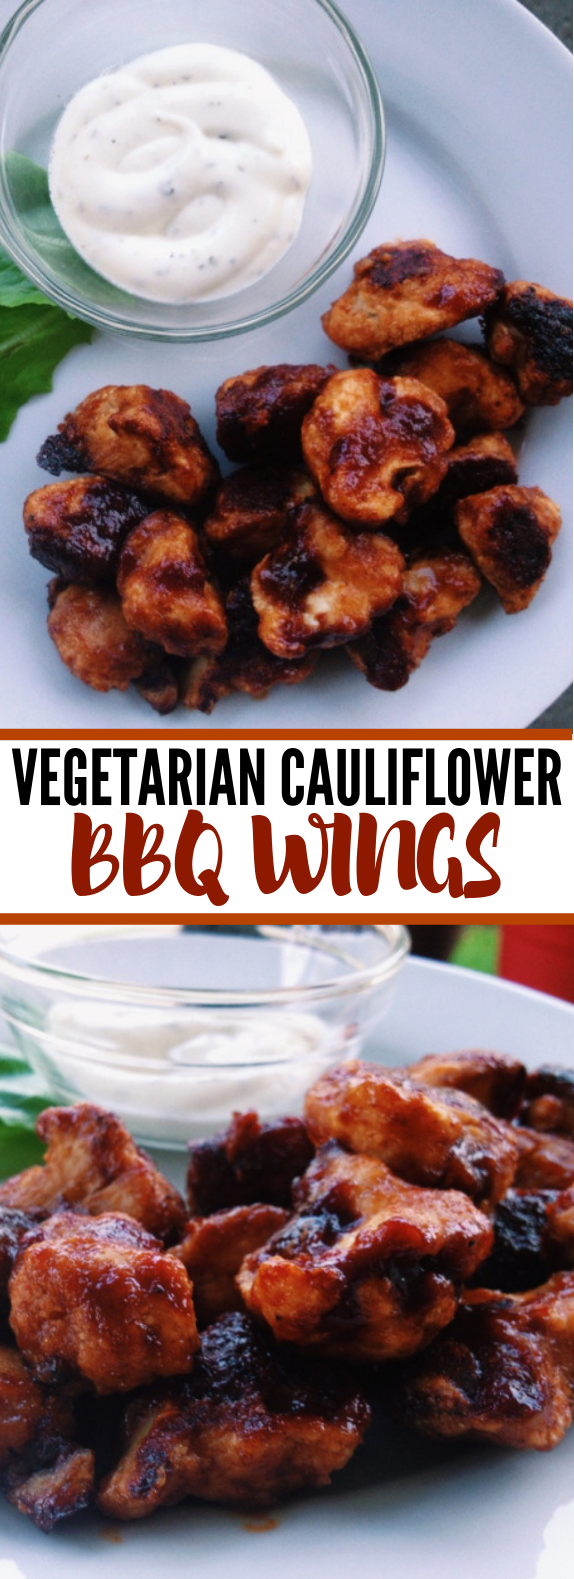 Cauliflower BBQ Wings #vegetarian #barbecue